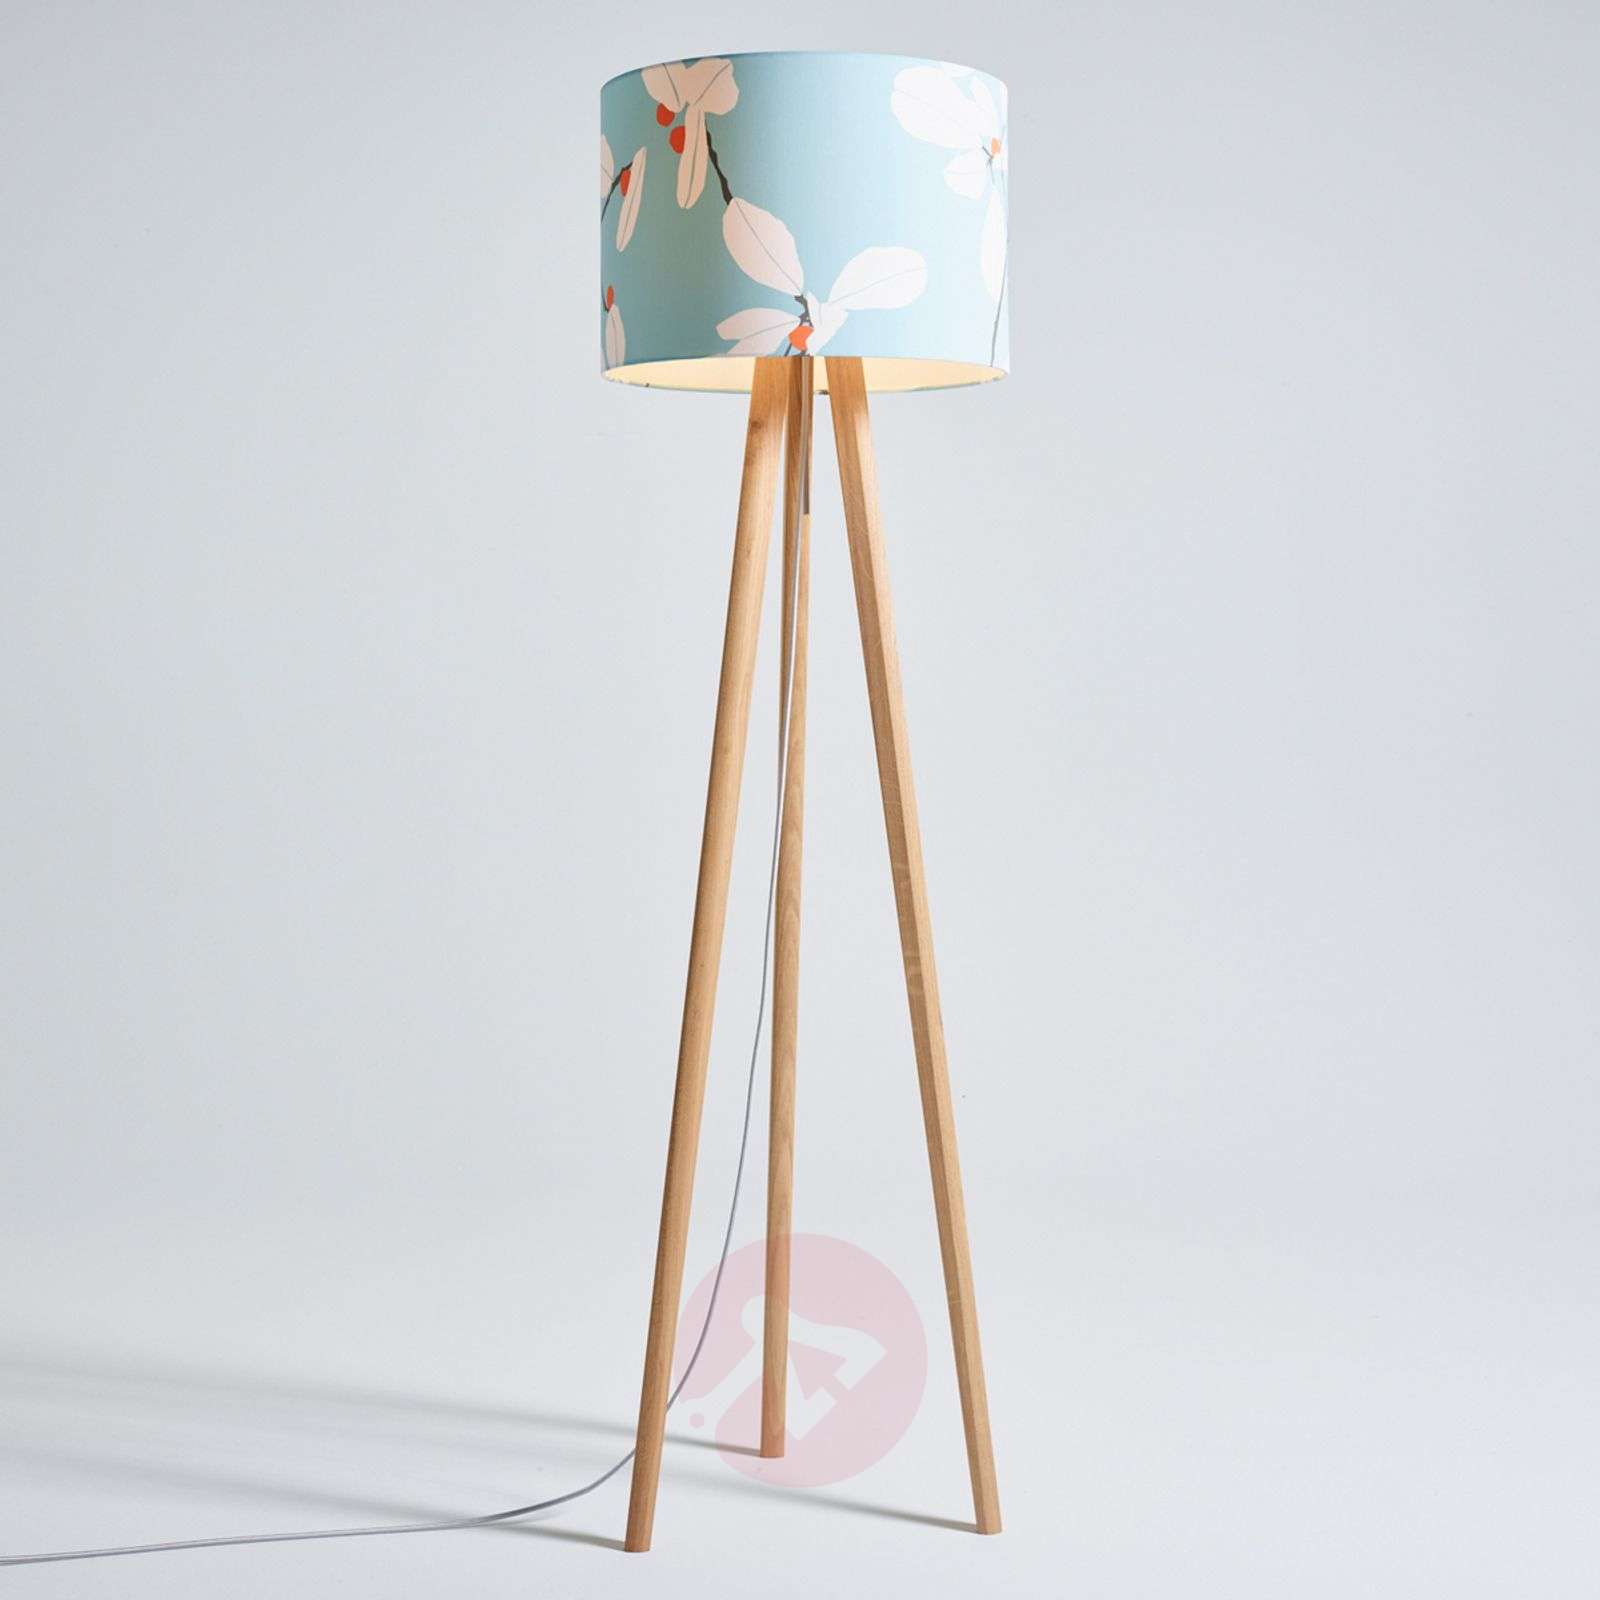 Wooden floor lamp sten flower fabric lampshade lights wooden floor lamp sten flower fabric lampshade 2600526 01 mozeypictures Image collections